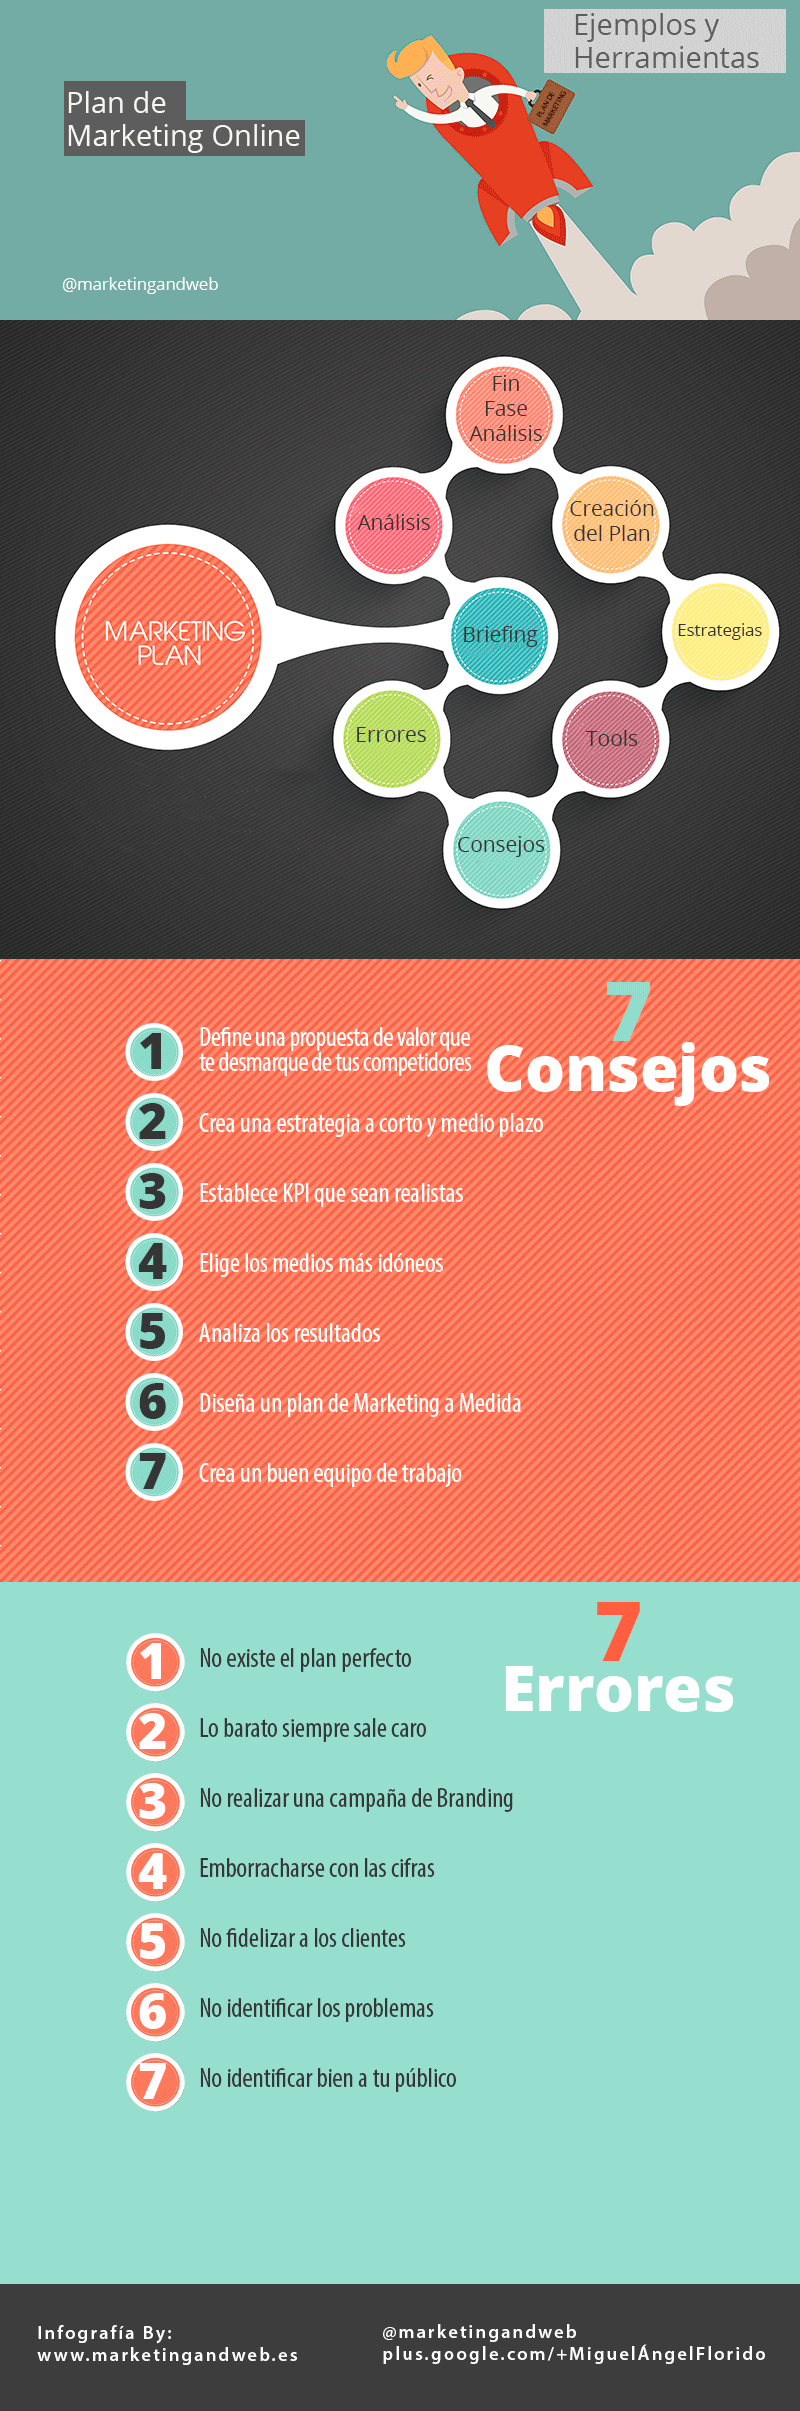 plan-de-marketing-online-infografia (1)